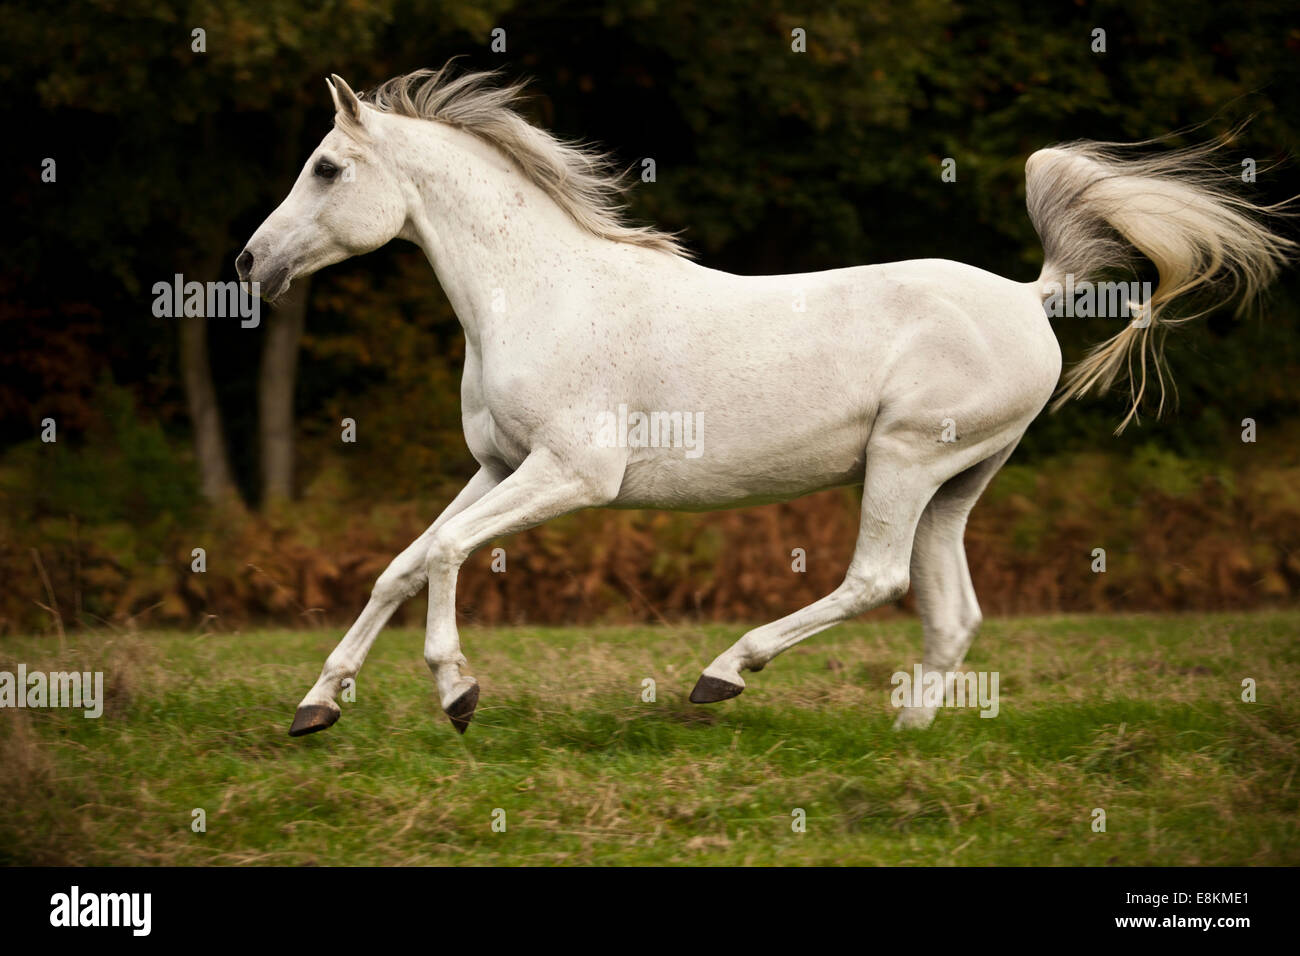 Arabe pur-sang hongre, cheval blanc, le galop on meadow Banque D'Images